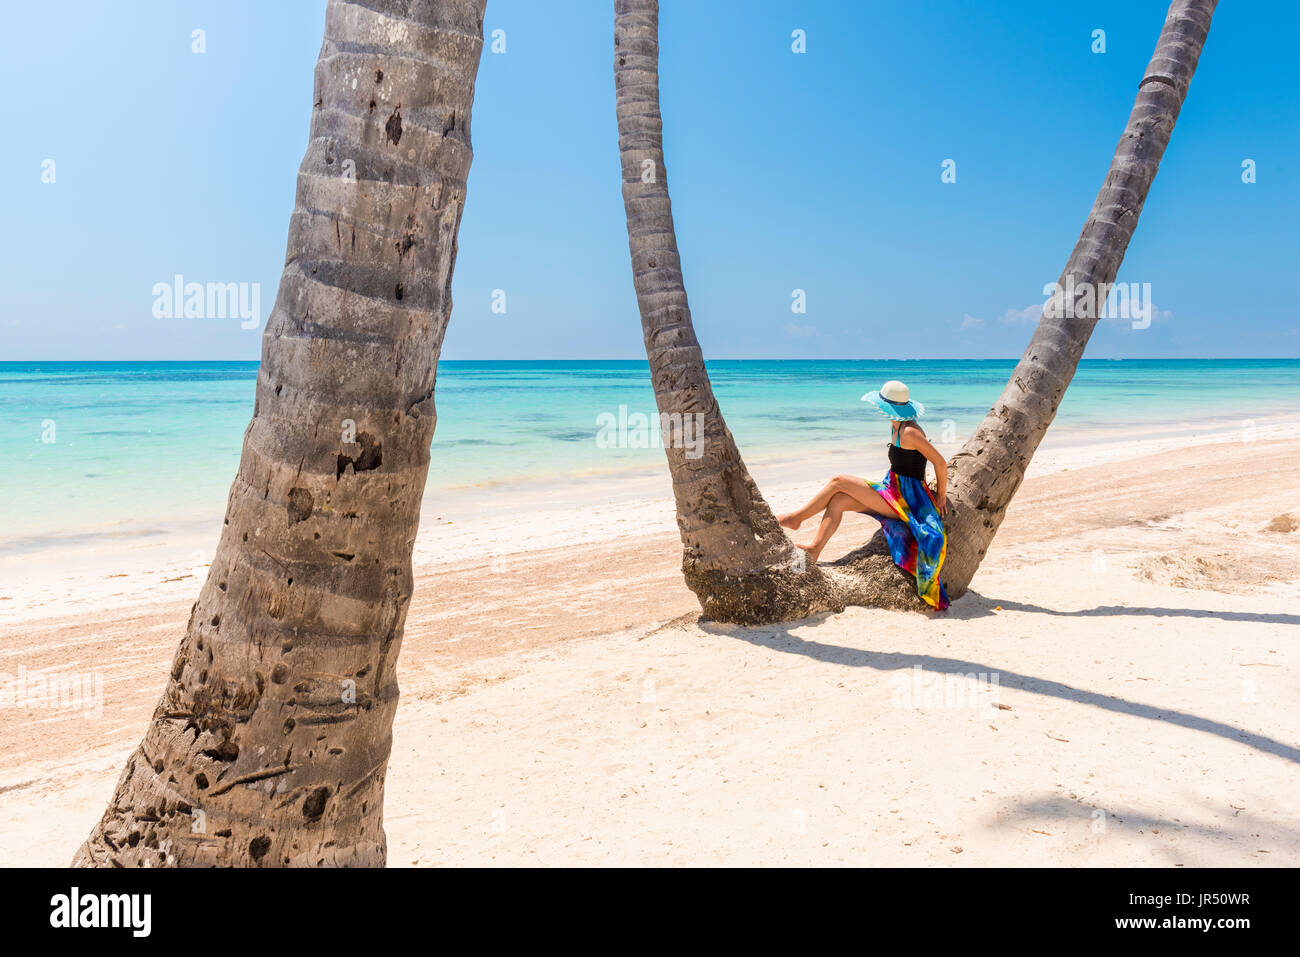 Juanillo Beach (playa Juanillo), Punta Cana, Dominican Republic. Woman under high palm trees on the beach. Stock Photo